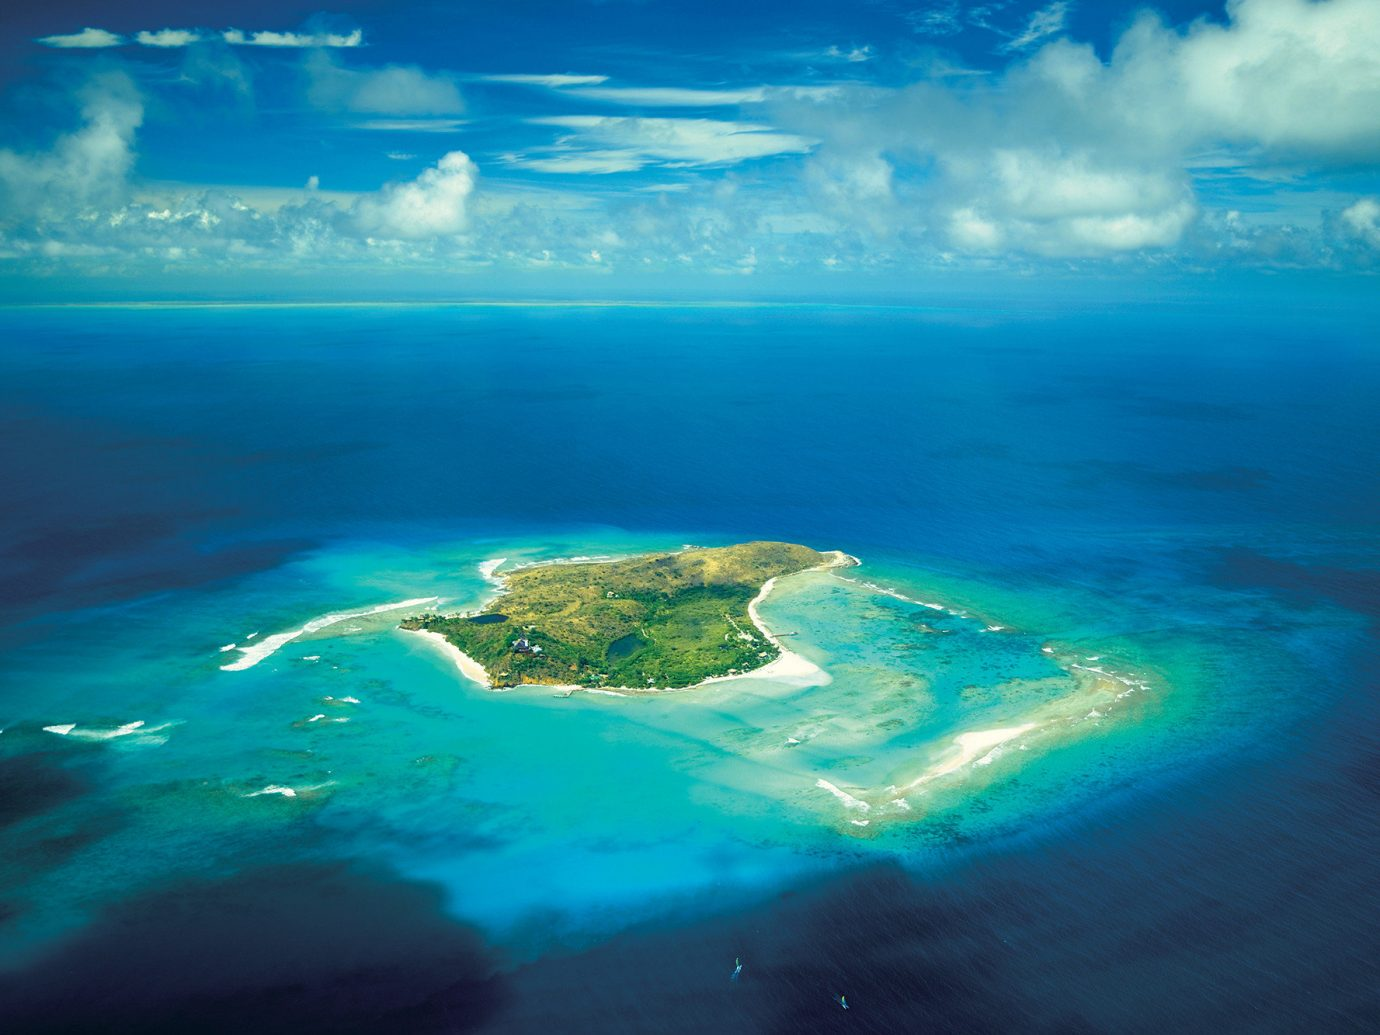 Trip Ideas water Nature reef Sea coastal and oceanic landforms water resources sky blue archipelago atmosphere Ocean islet Island calm earth aerial photography marine biology atoll computer wallpaper Lagoon horizon clouds